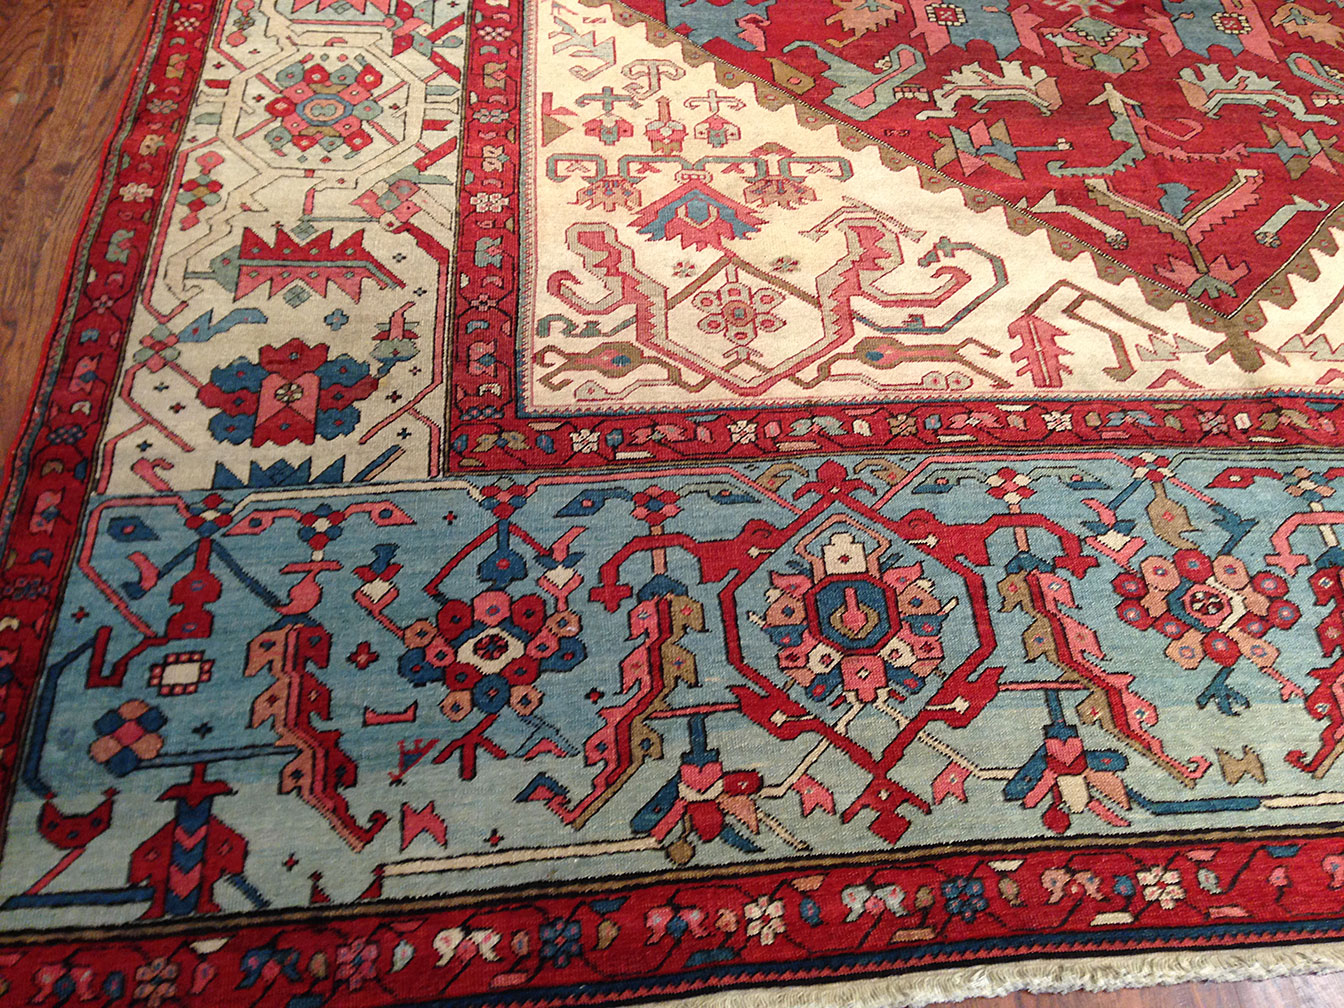 Antique bakshaish Carpet - # 9463